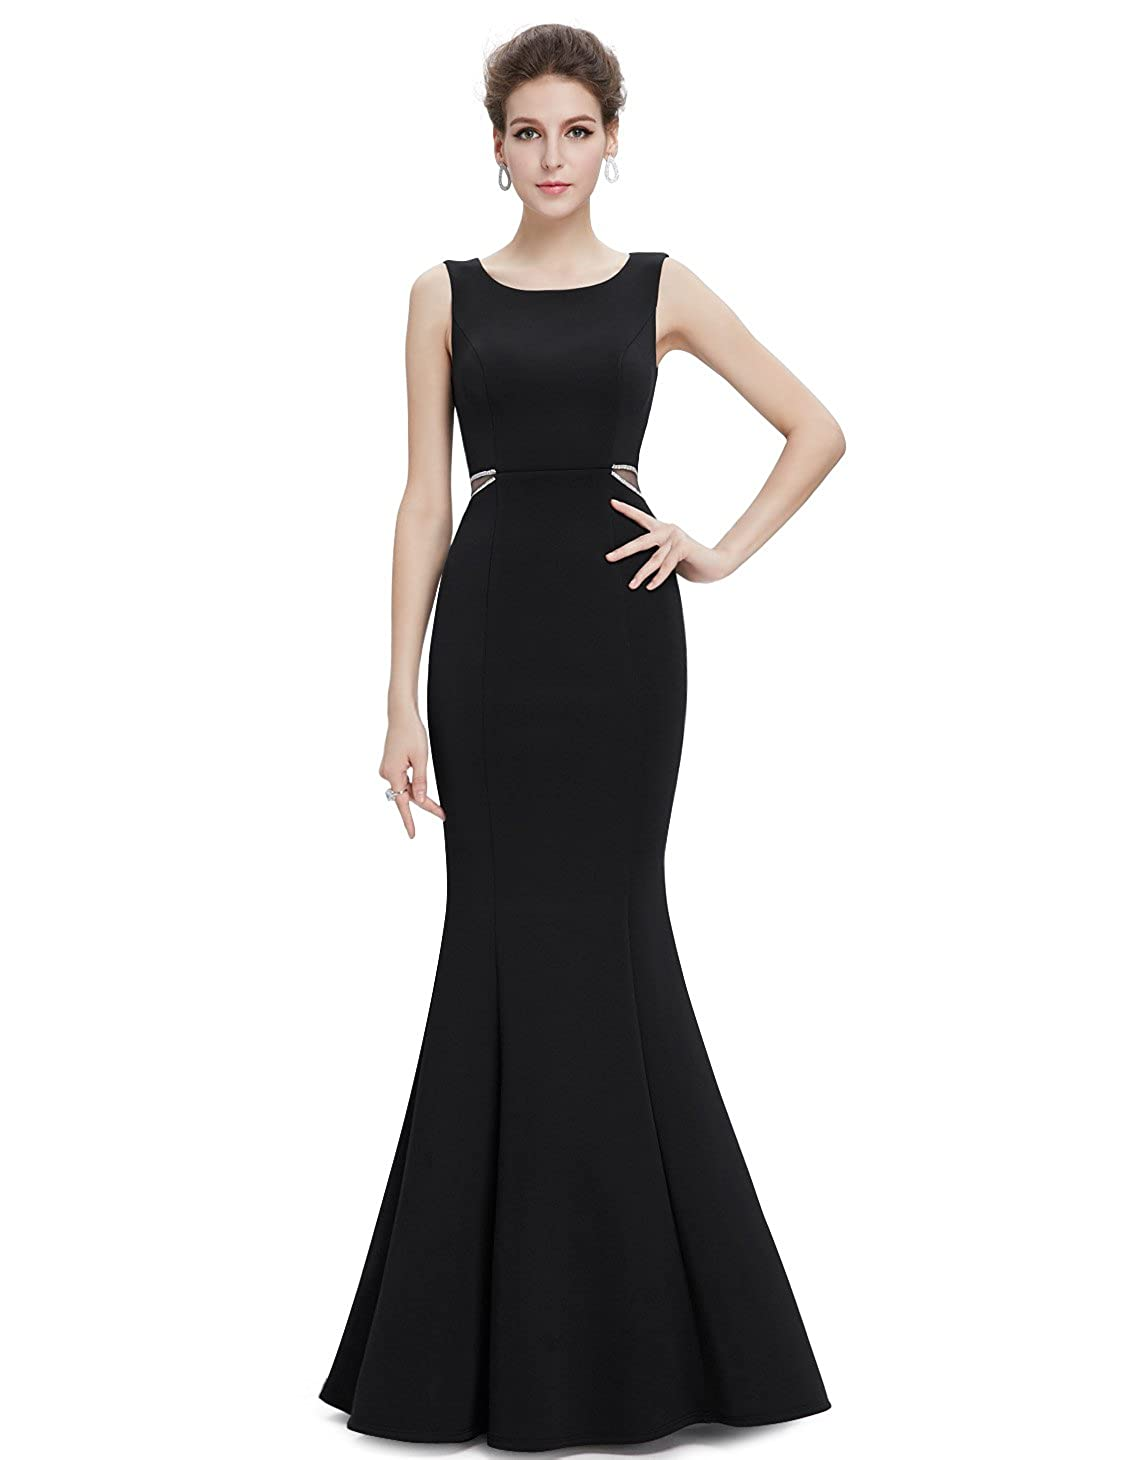 0b45642c36 Ever-Pretty Women s Sexy Floor Length Mermaid Style Evening Dress 08755 at  Amazon Women s Clothing store